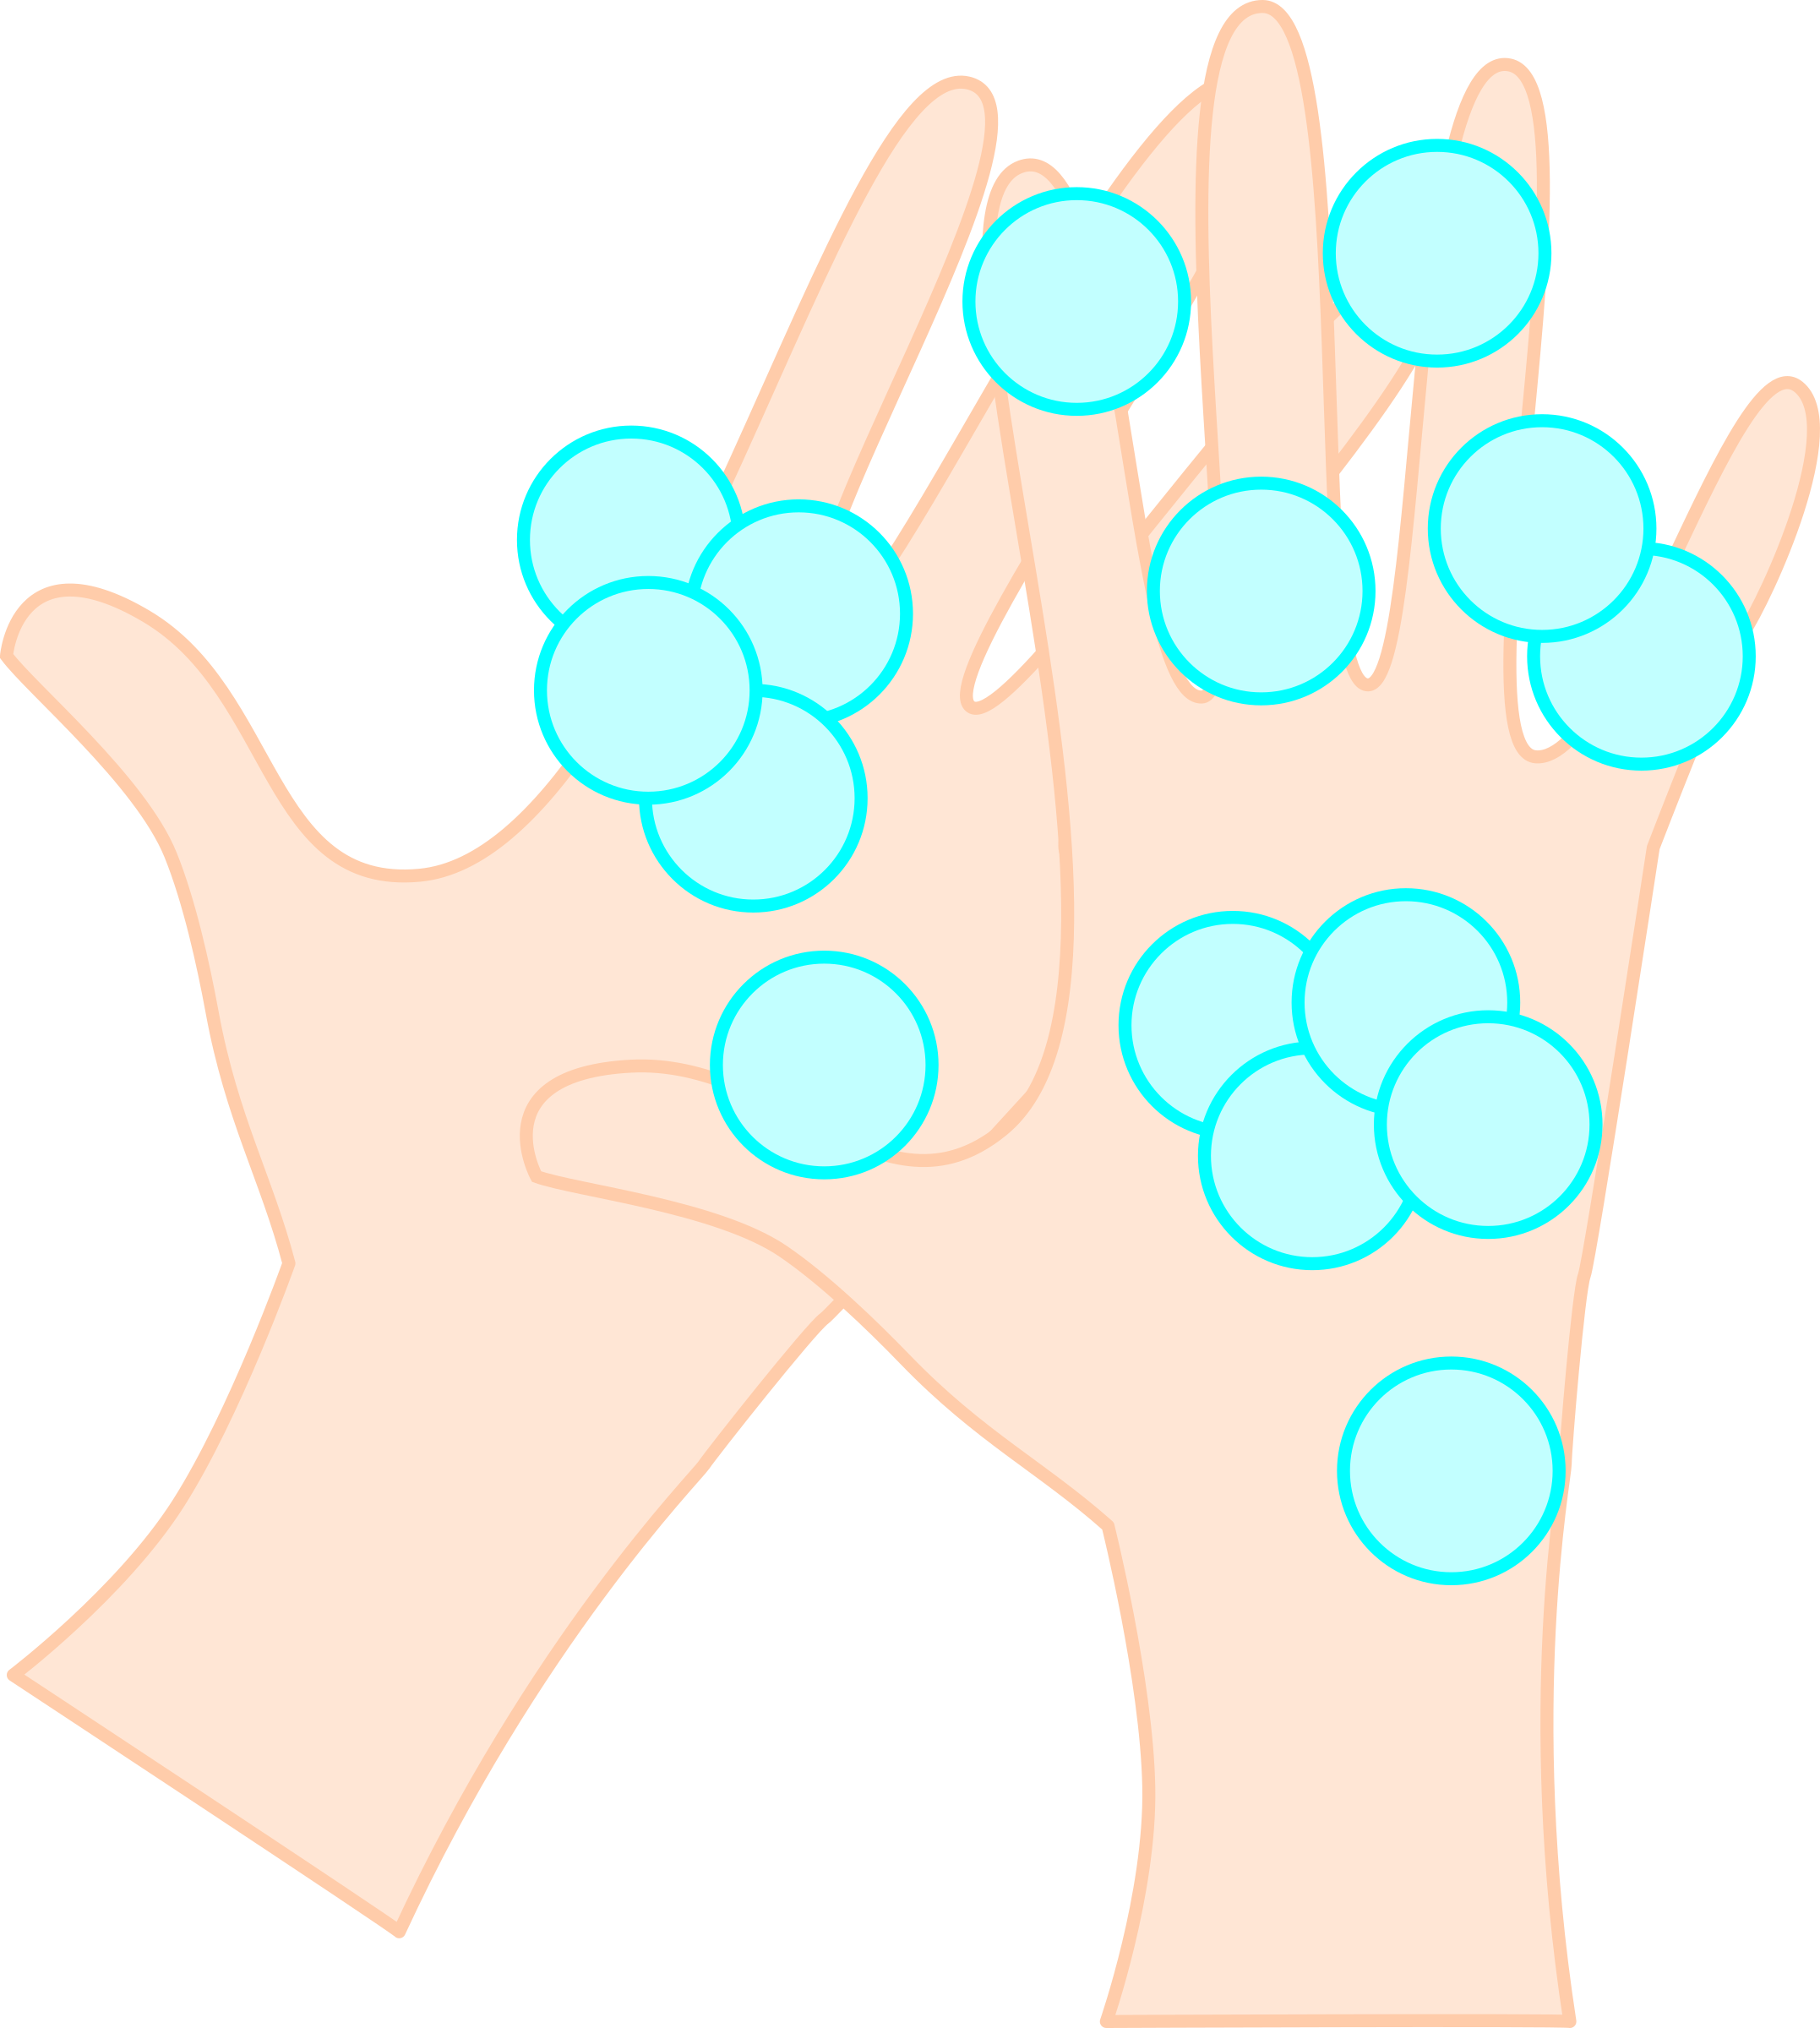 Washing hand clipart banner transparent stock Clipart - Wash Hands banner transparent stock